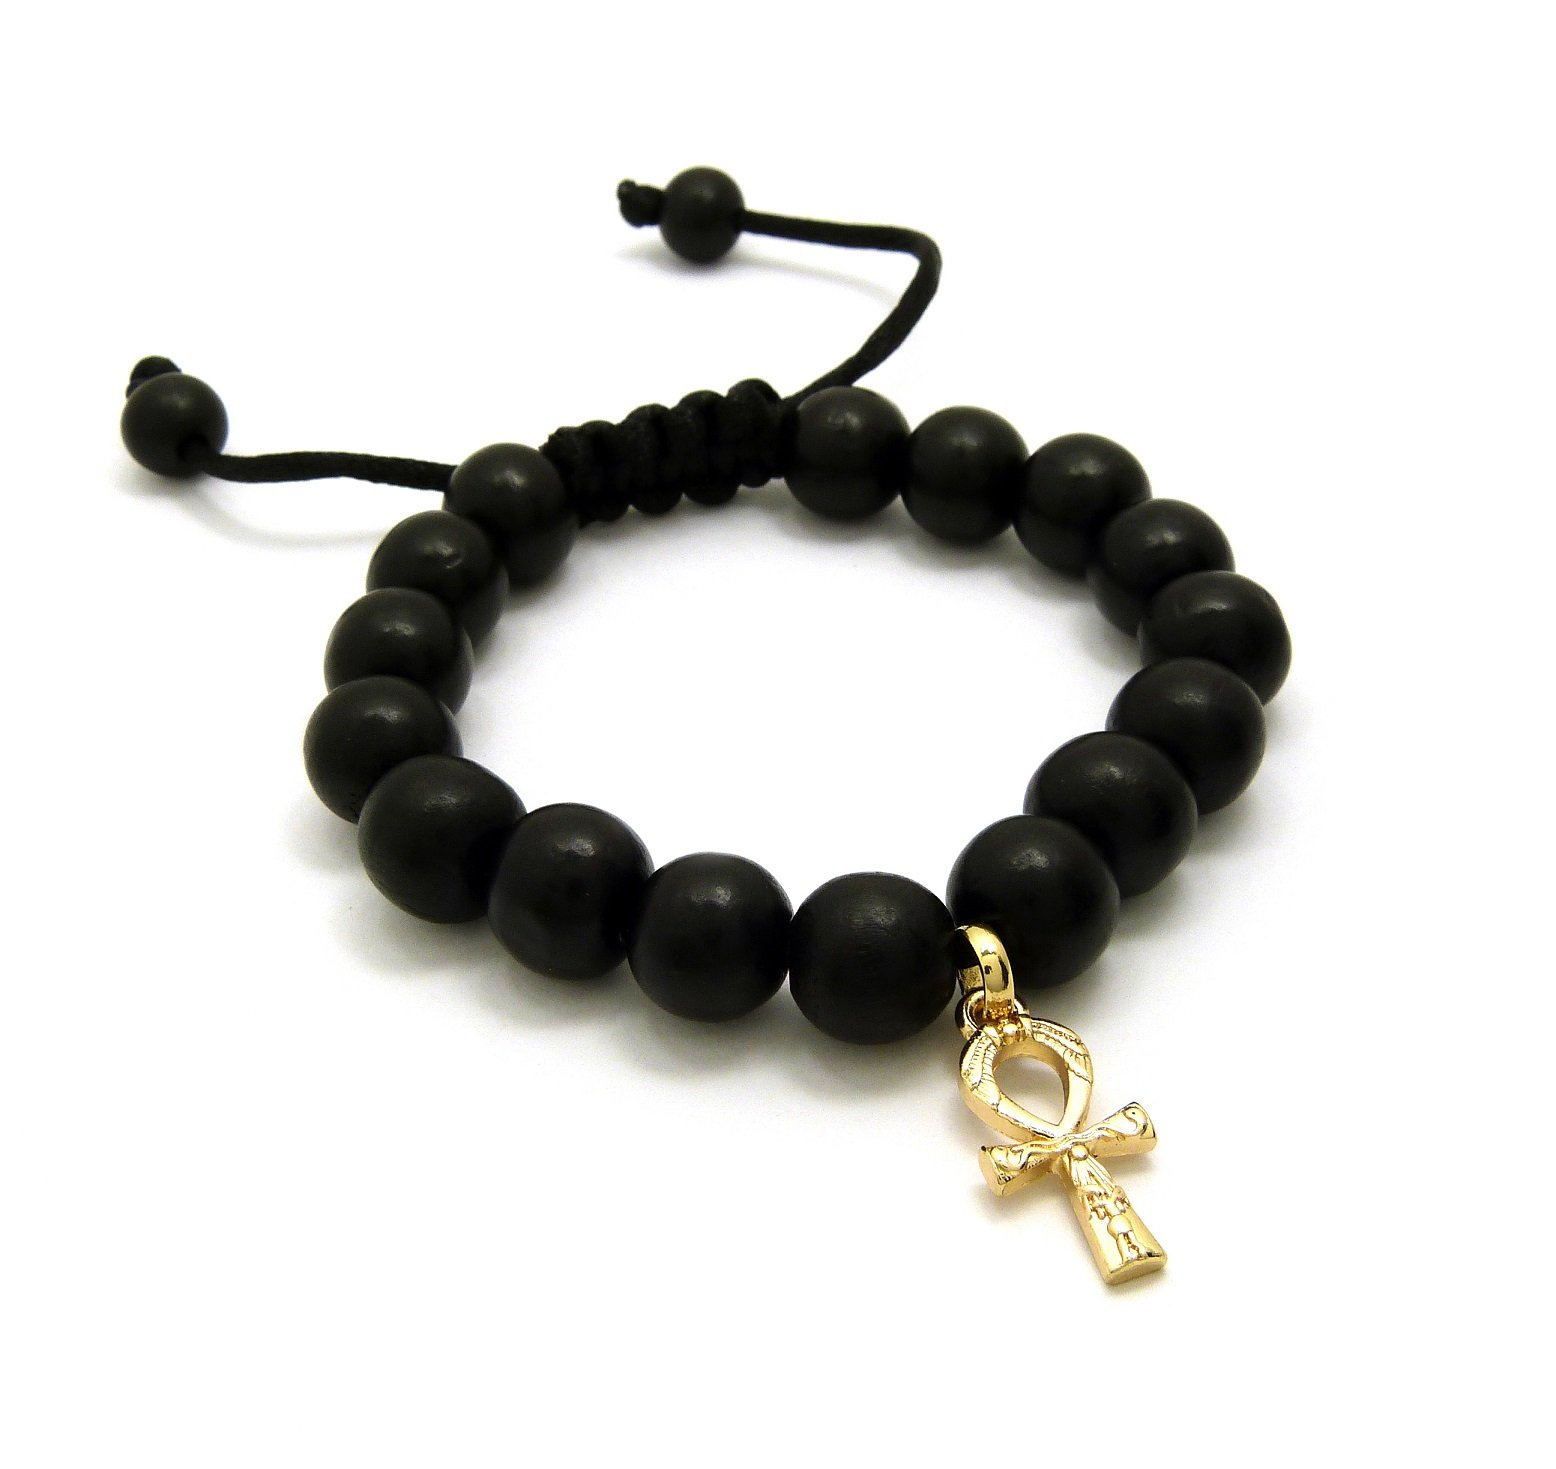 Egypt Key of Life Ankh Charm Adjustable 12mm Wooden Bead Bracelet in Black Tone (Ankh Bracelet / Black)